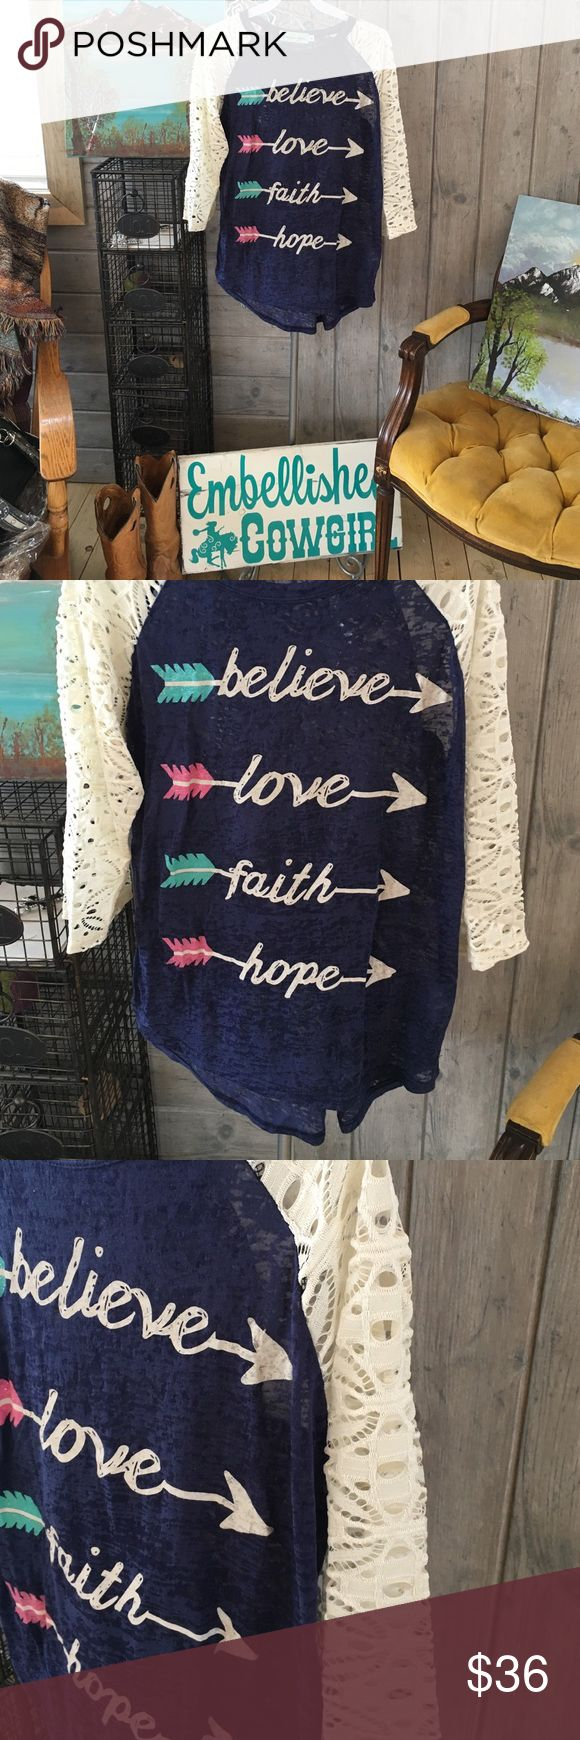 Burnout tee top with graphics and sayings Cute lace sleeve top with graphics and sayings. Fits true woman boutique and will have our tags attached embellished cowgirl sg Tops Tees - Long Sleeve